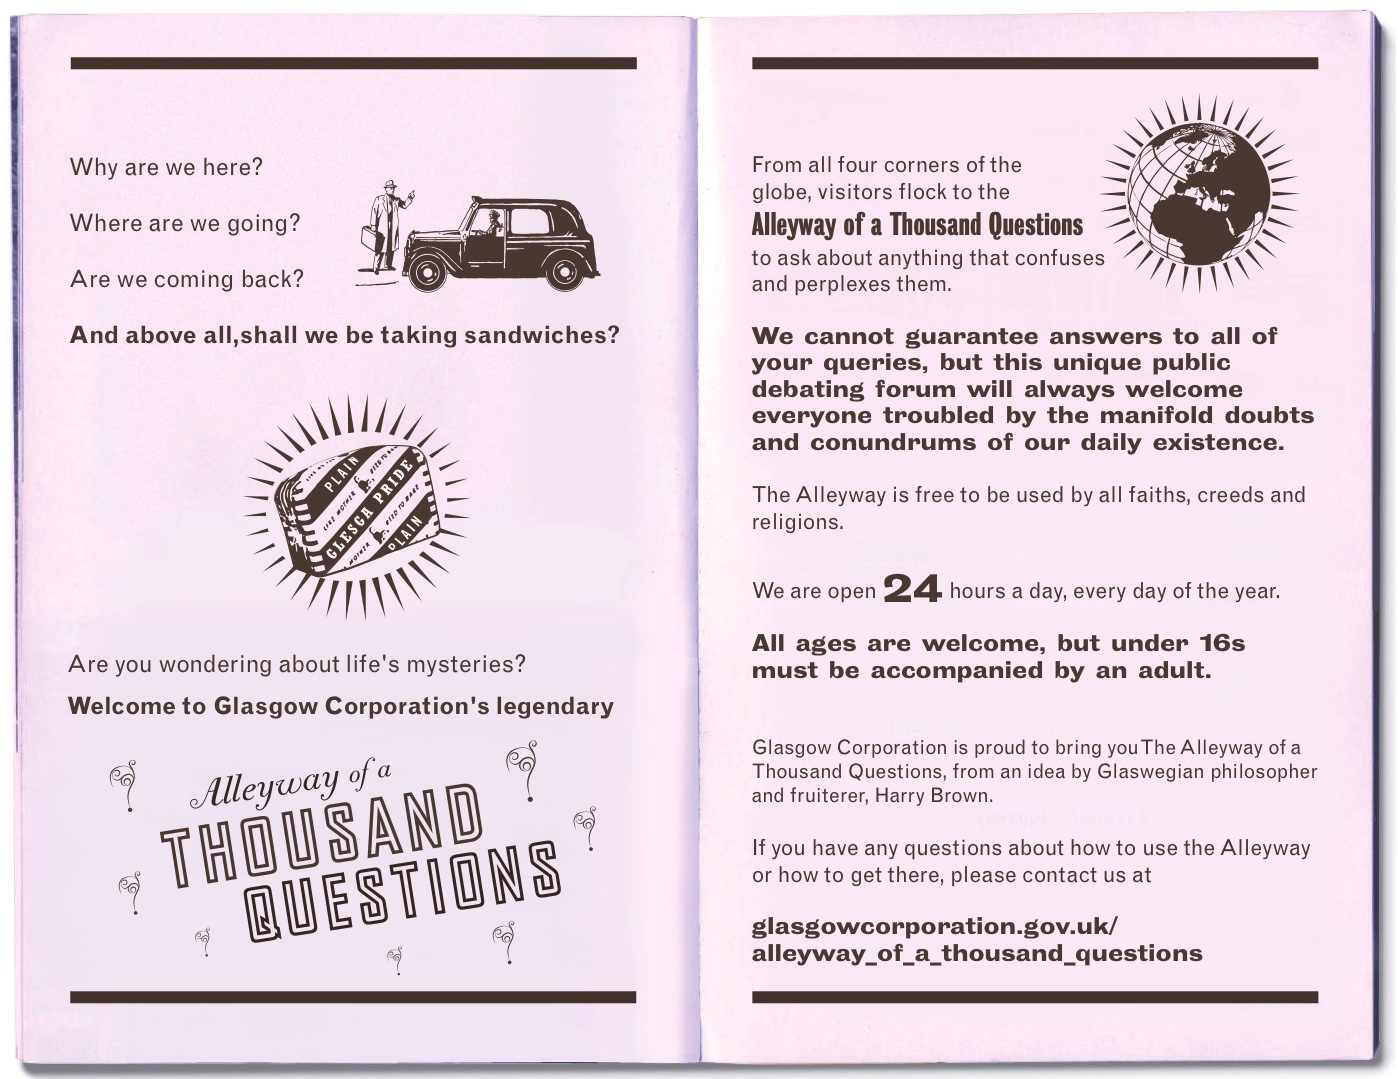 Alleyway of a Thousand Questions leaflet